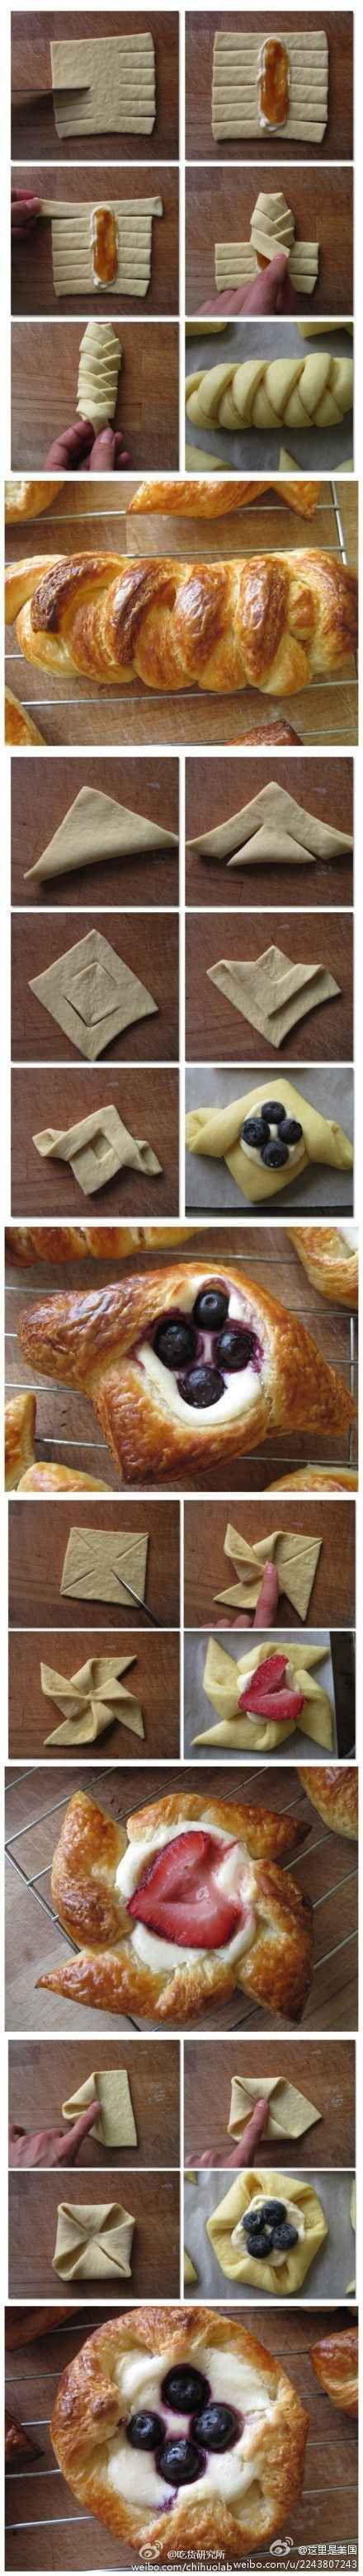 Pastry Folding Hacks | 40 Creative Food Hacks That Will Change The Way You Cook #dessert #recipes #sugar #recipe #delicious